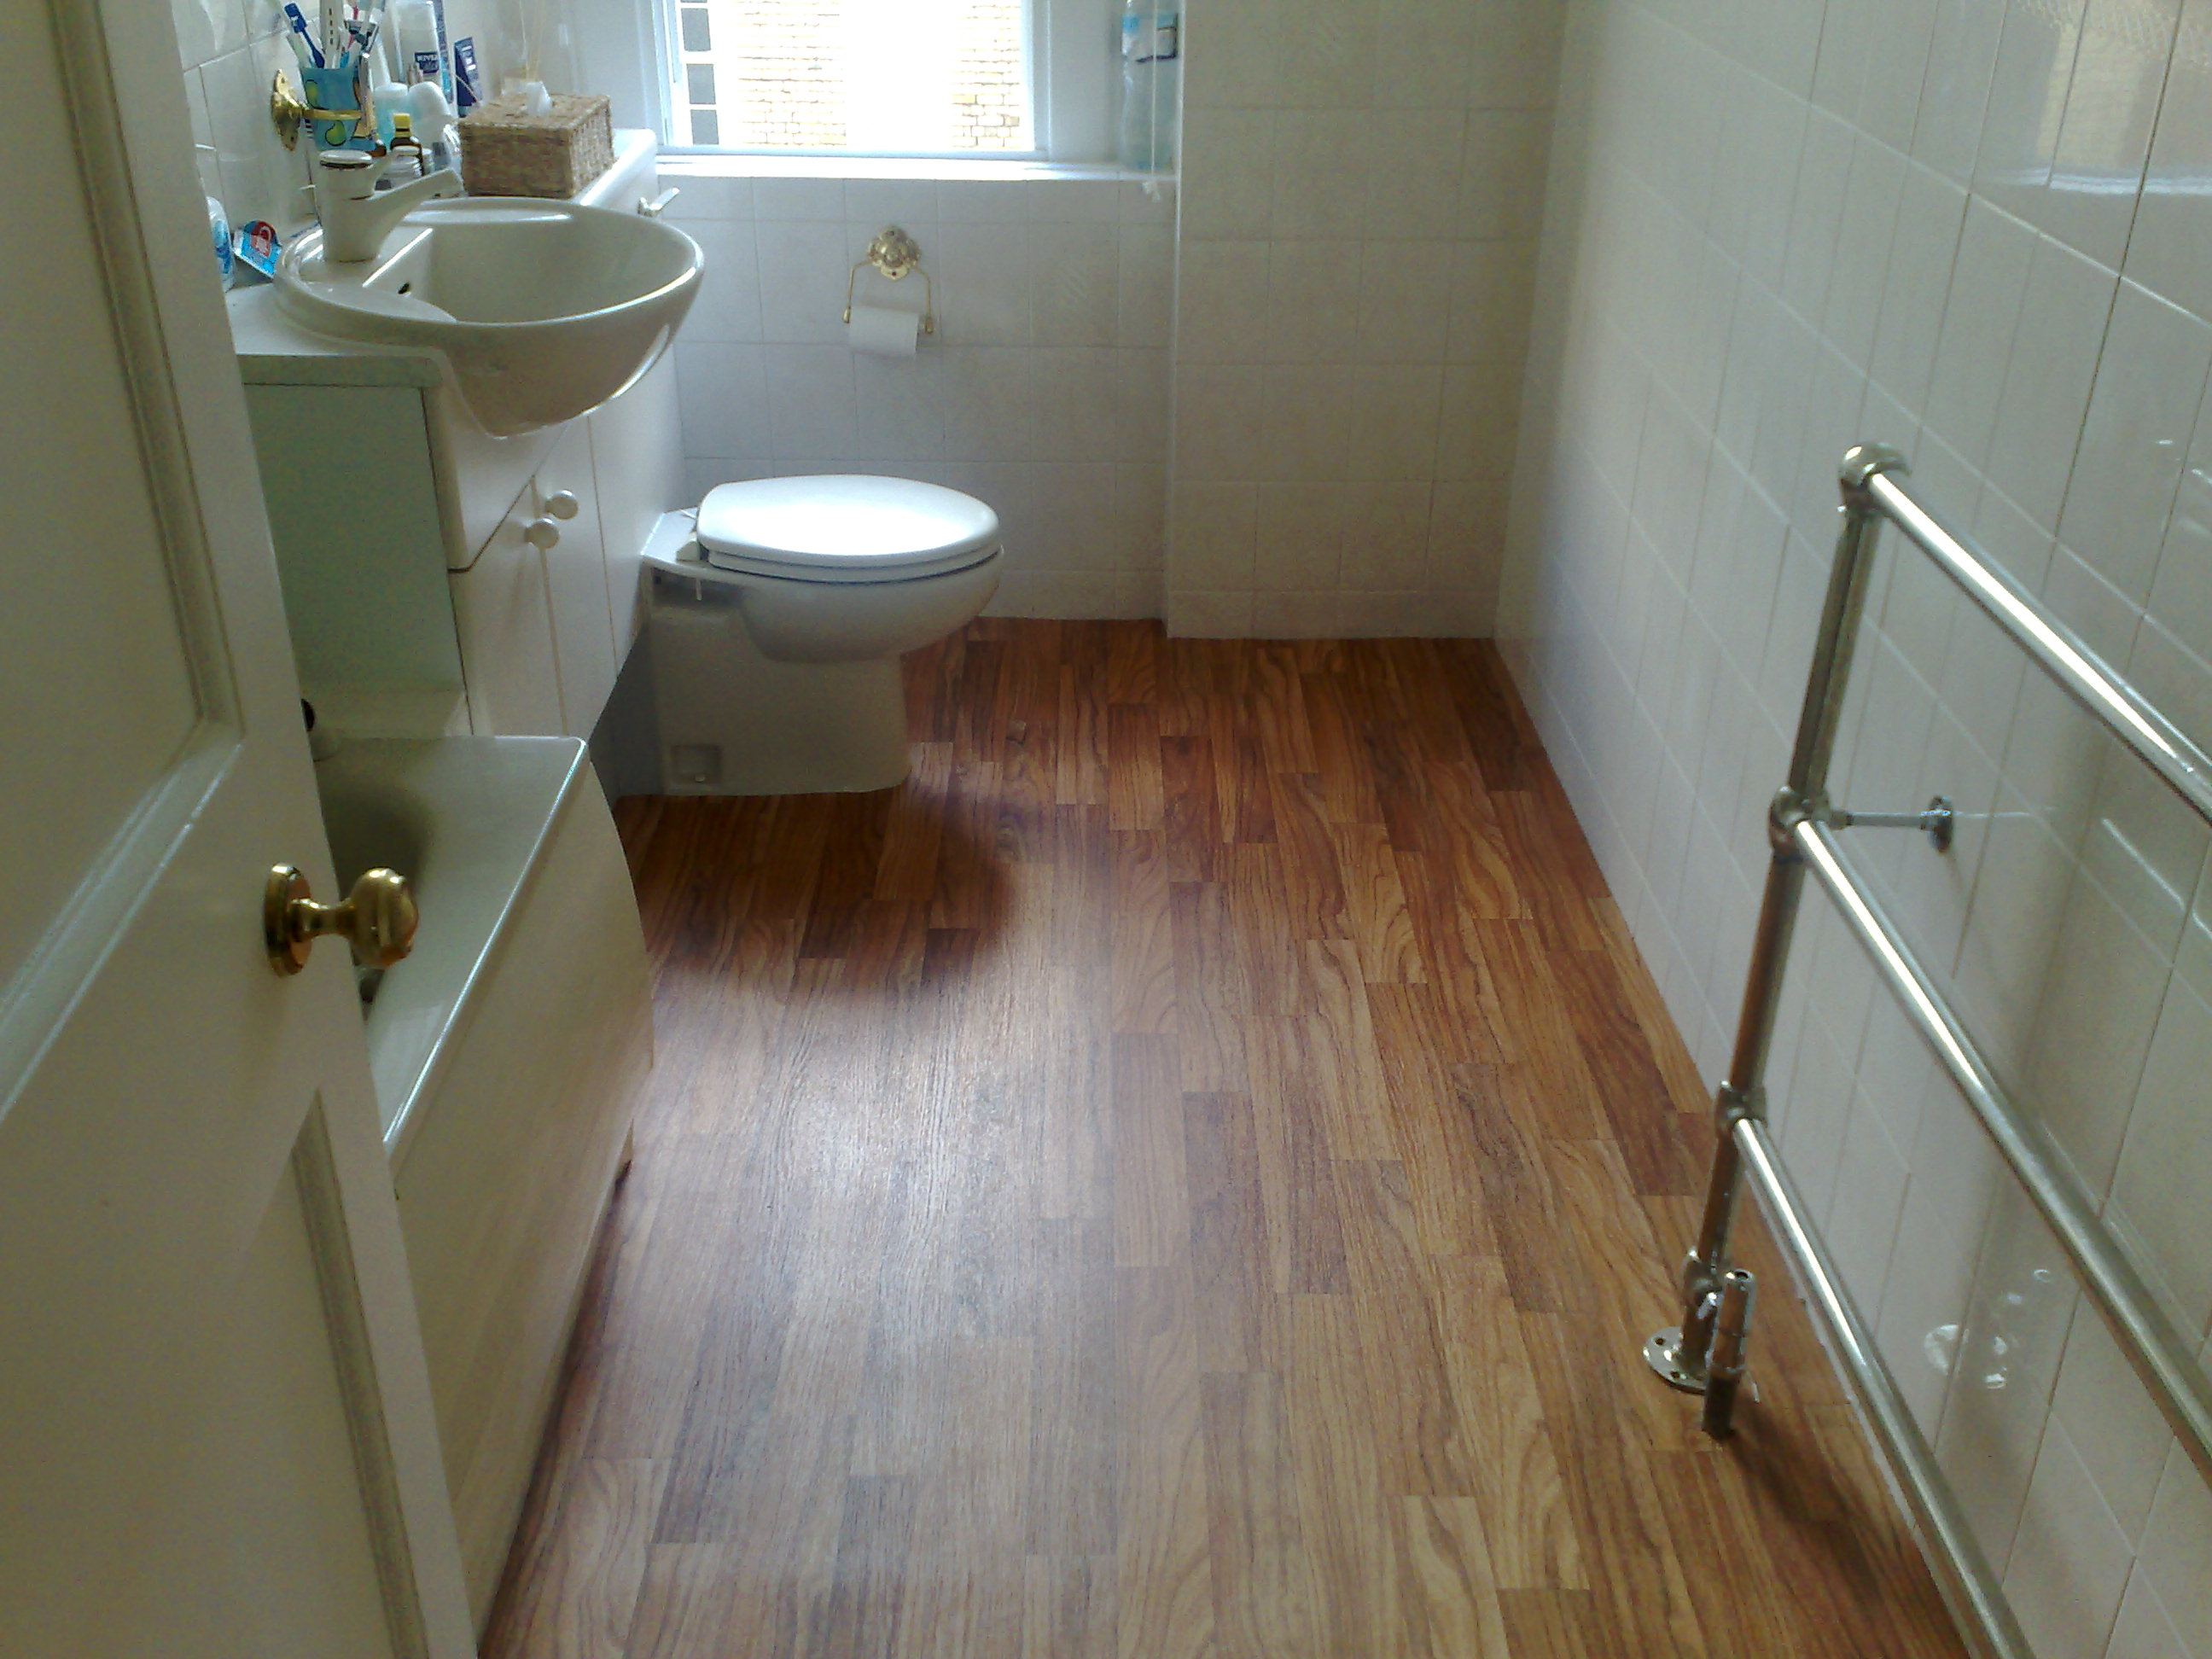 Bathroom flooring Photo - 1